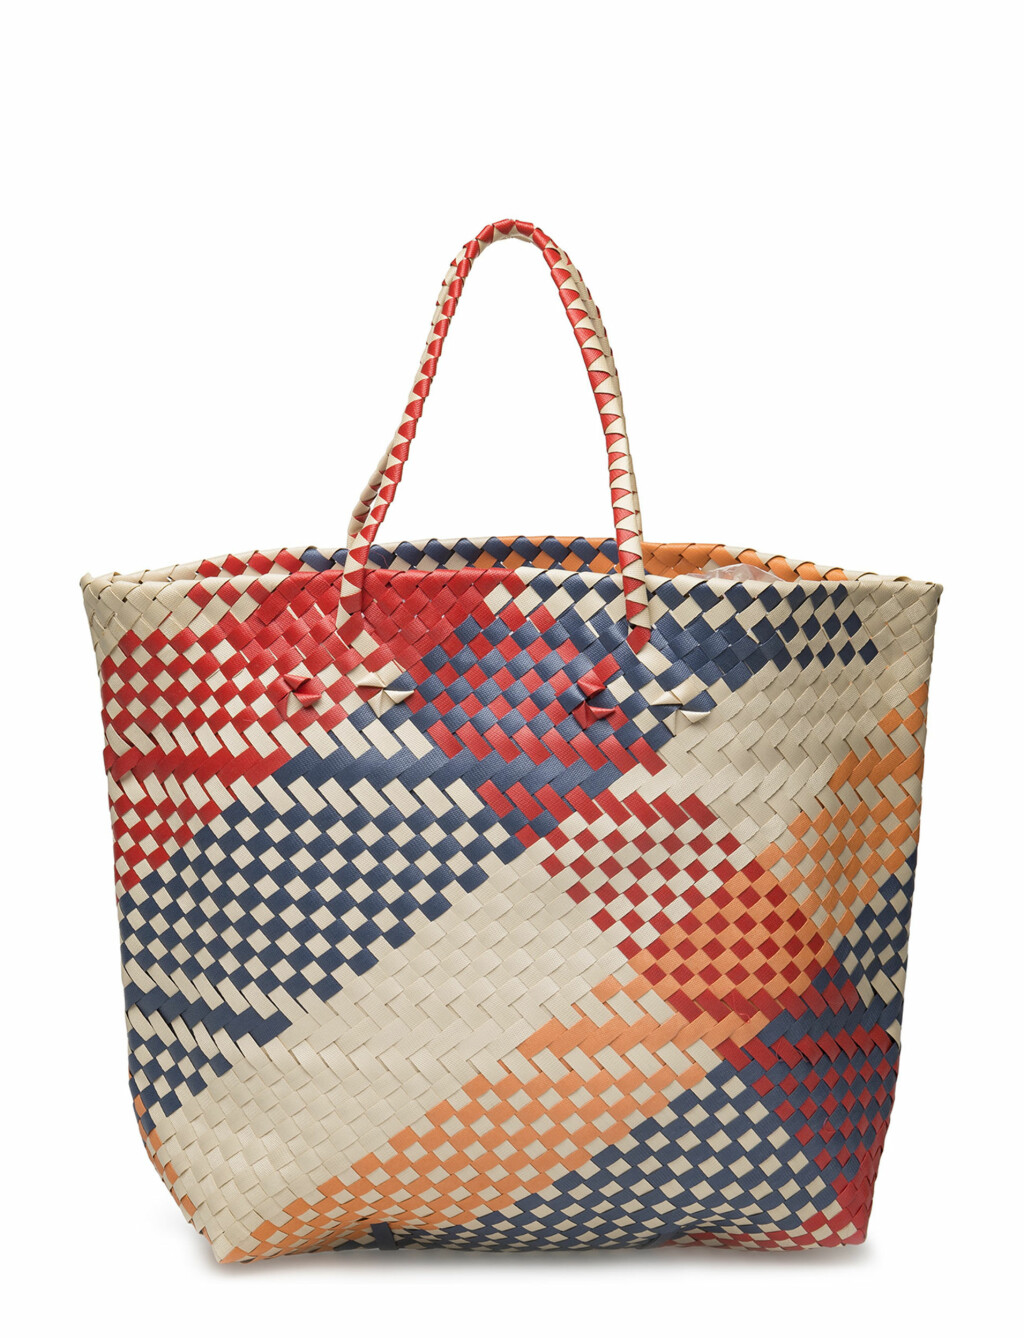 Veske fra Mango 269,-| https://www.boozt.com/no/no/mango/braided-shopper-bag_18178133/18178136?navId=67362&sNavId=67535&group=listing&position=1000000